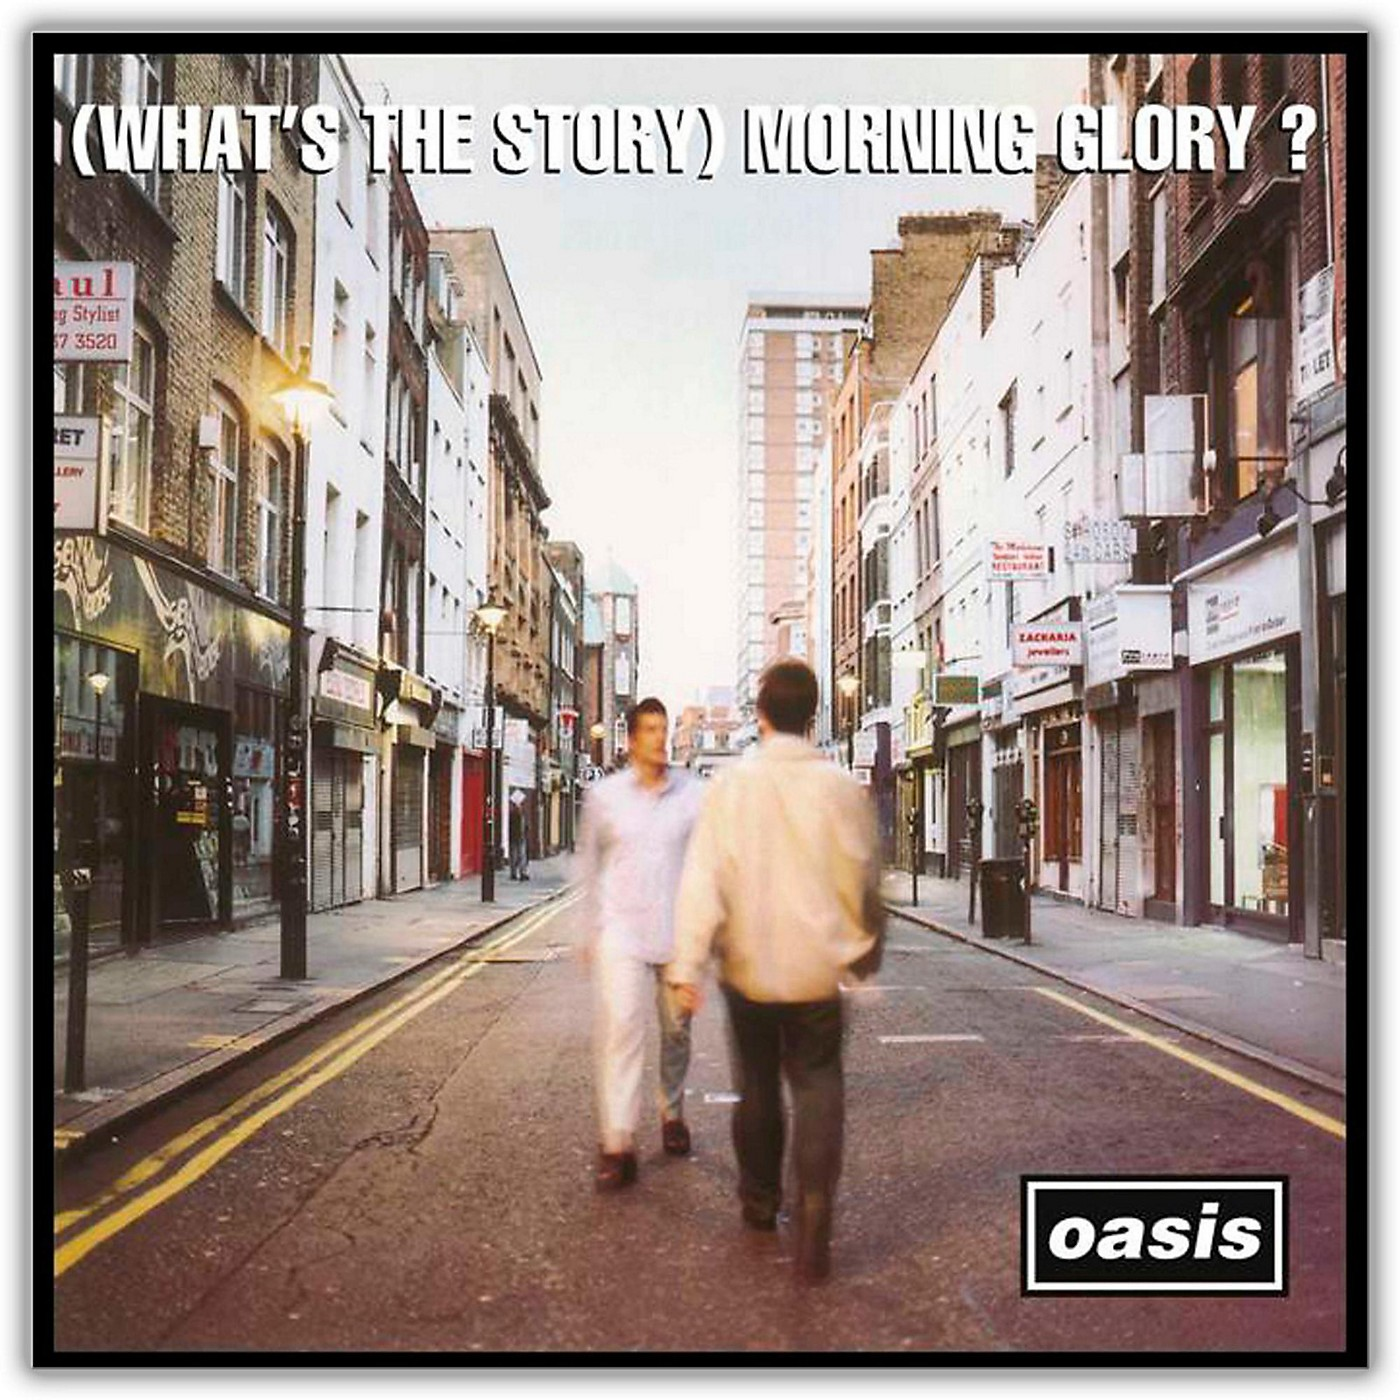 Universal Music Group Oasis - What's the Story Morning Glory Vinyl LP thumbnail